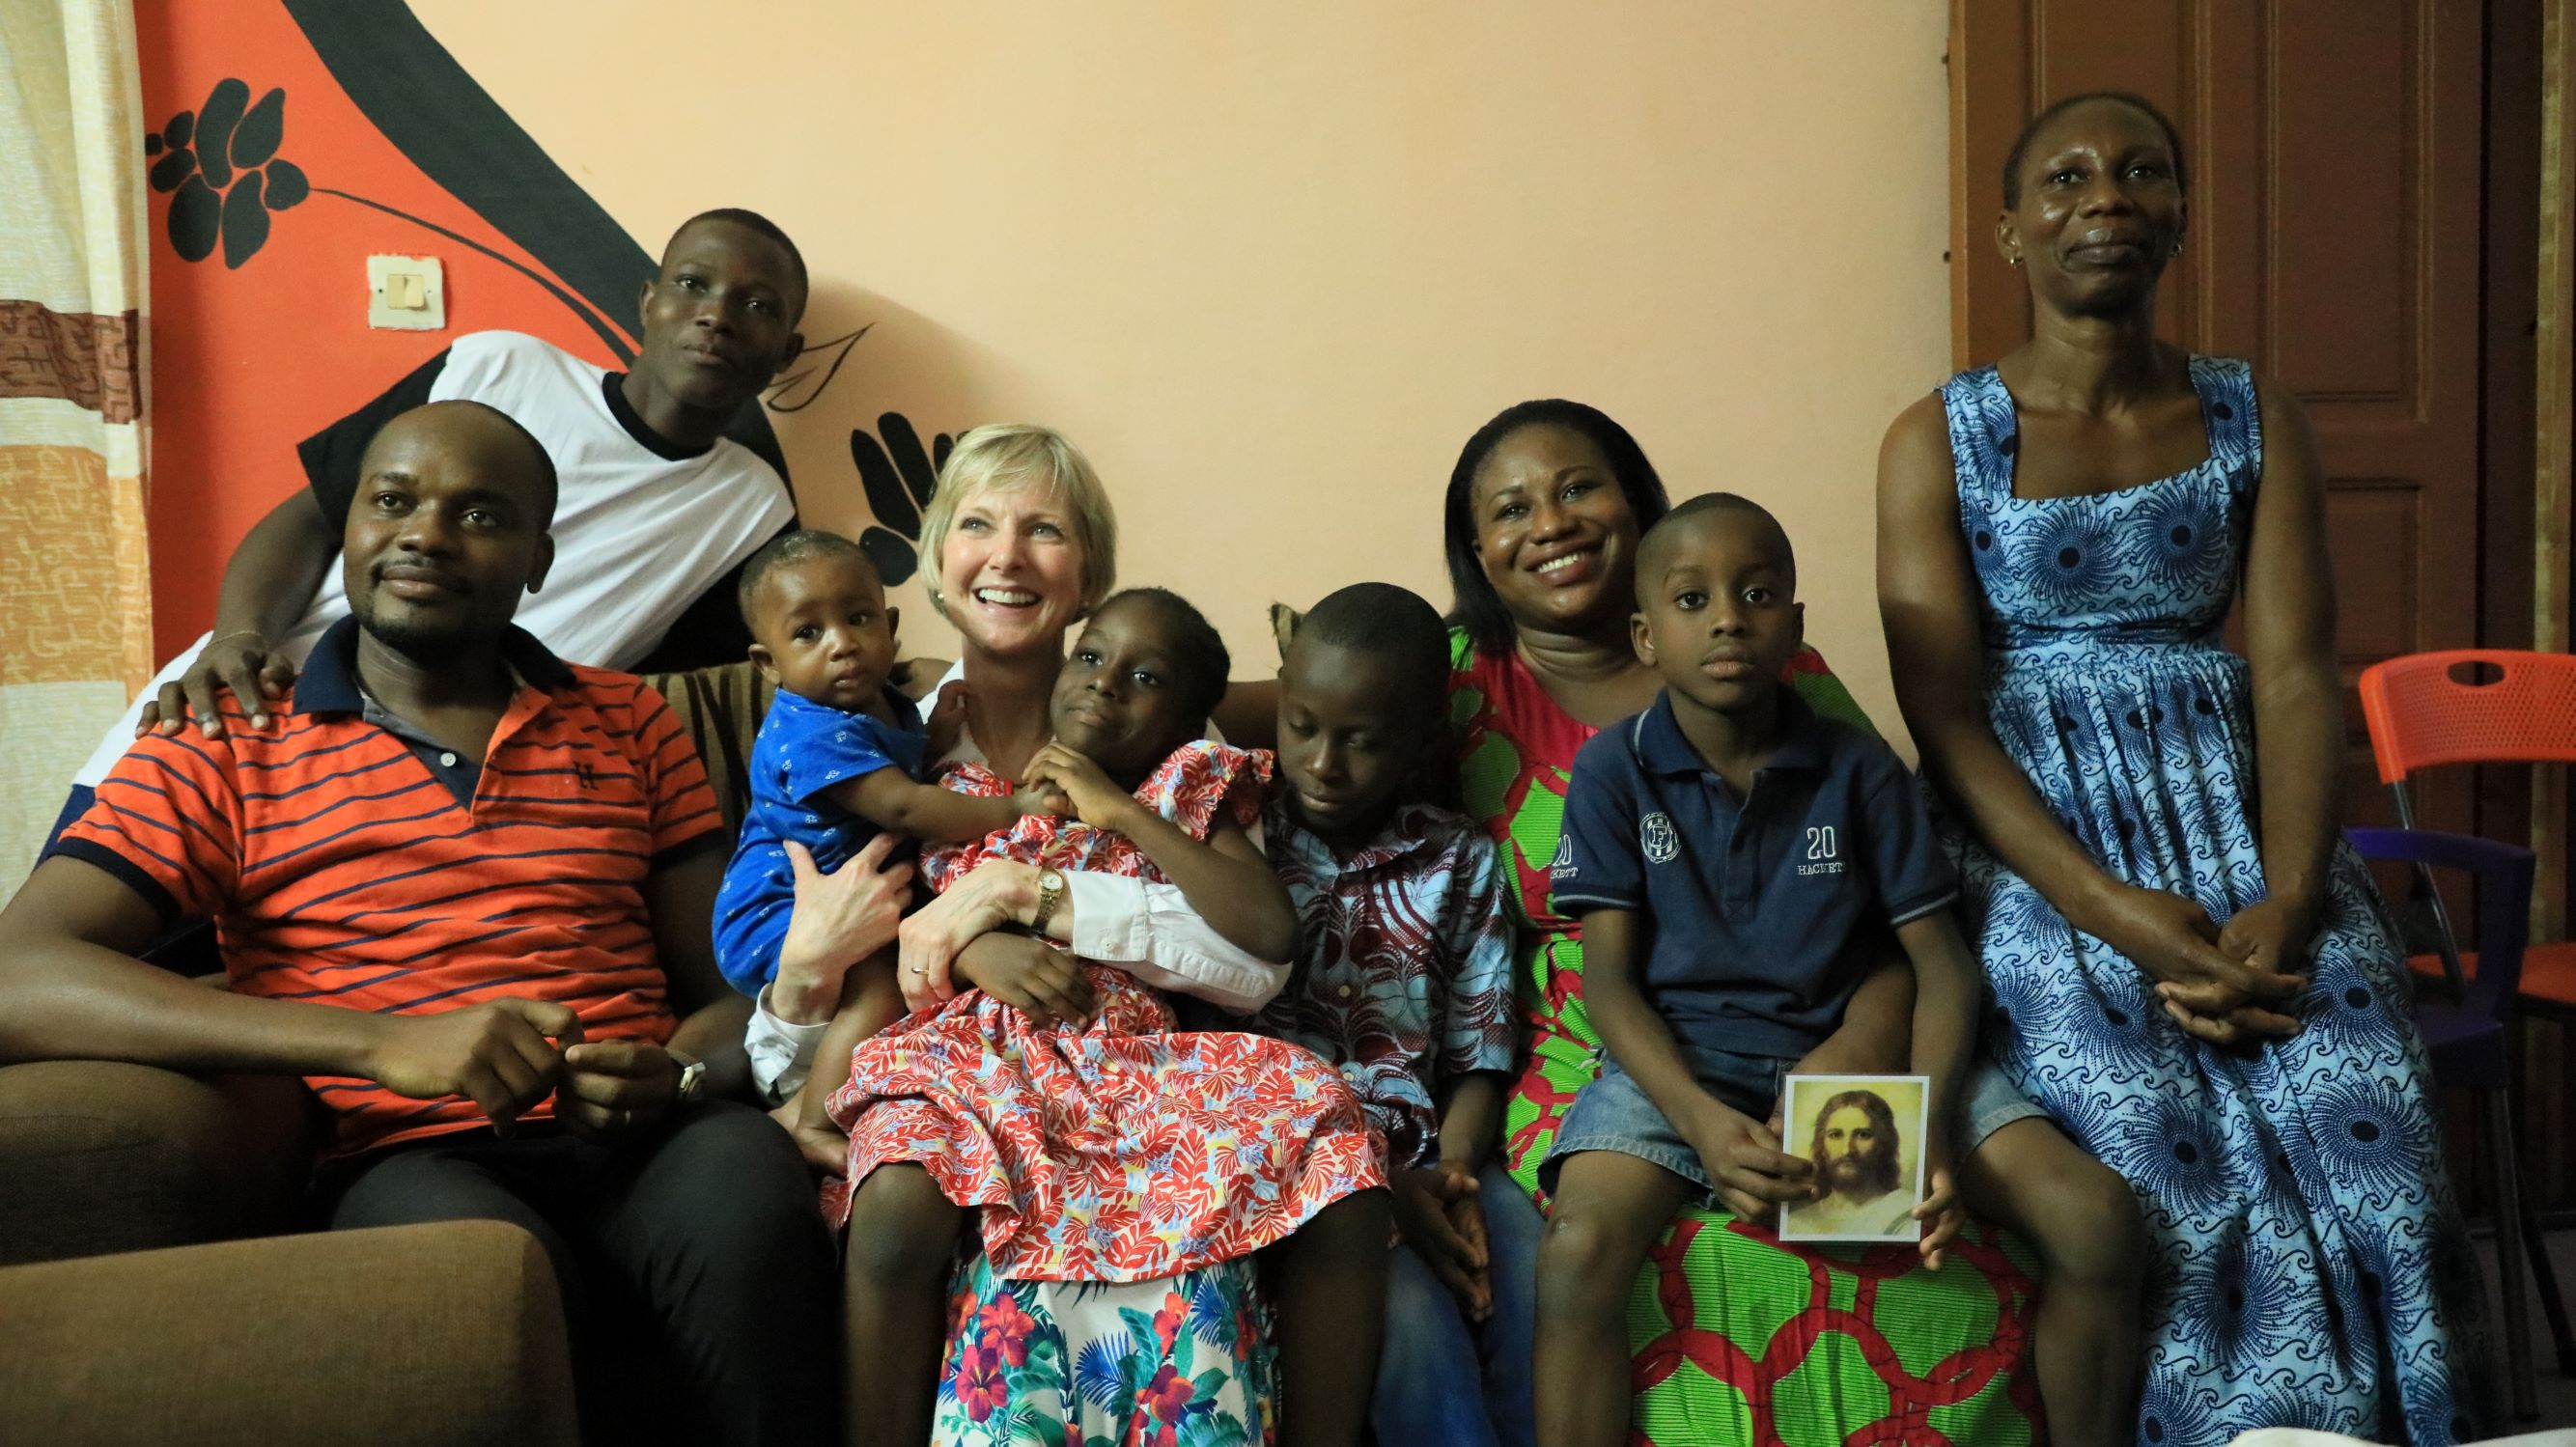 A Latter-day Saint family meets with Sister Jean B. Bingham, Relief Society general president, in Abidjan, Côte d'Ivoire, Friday, March 8, 2019.